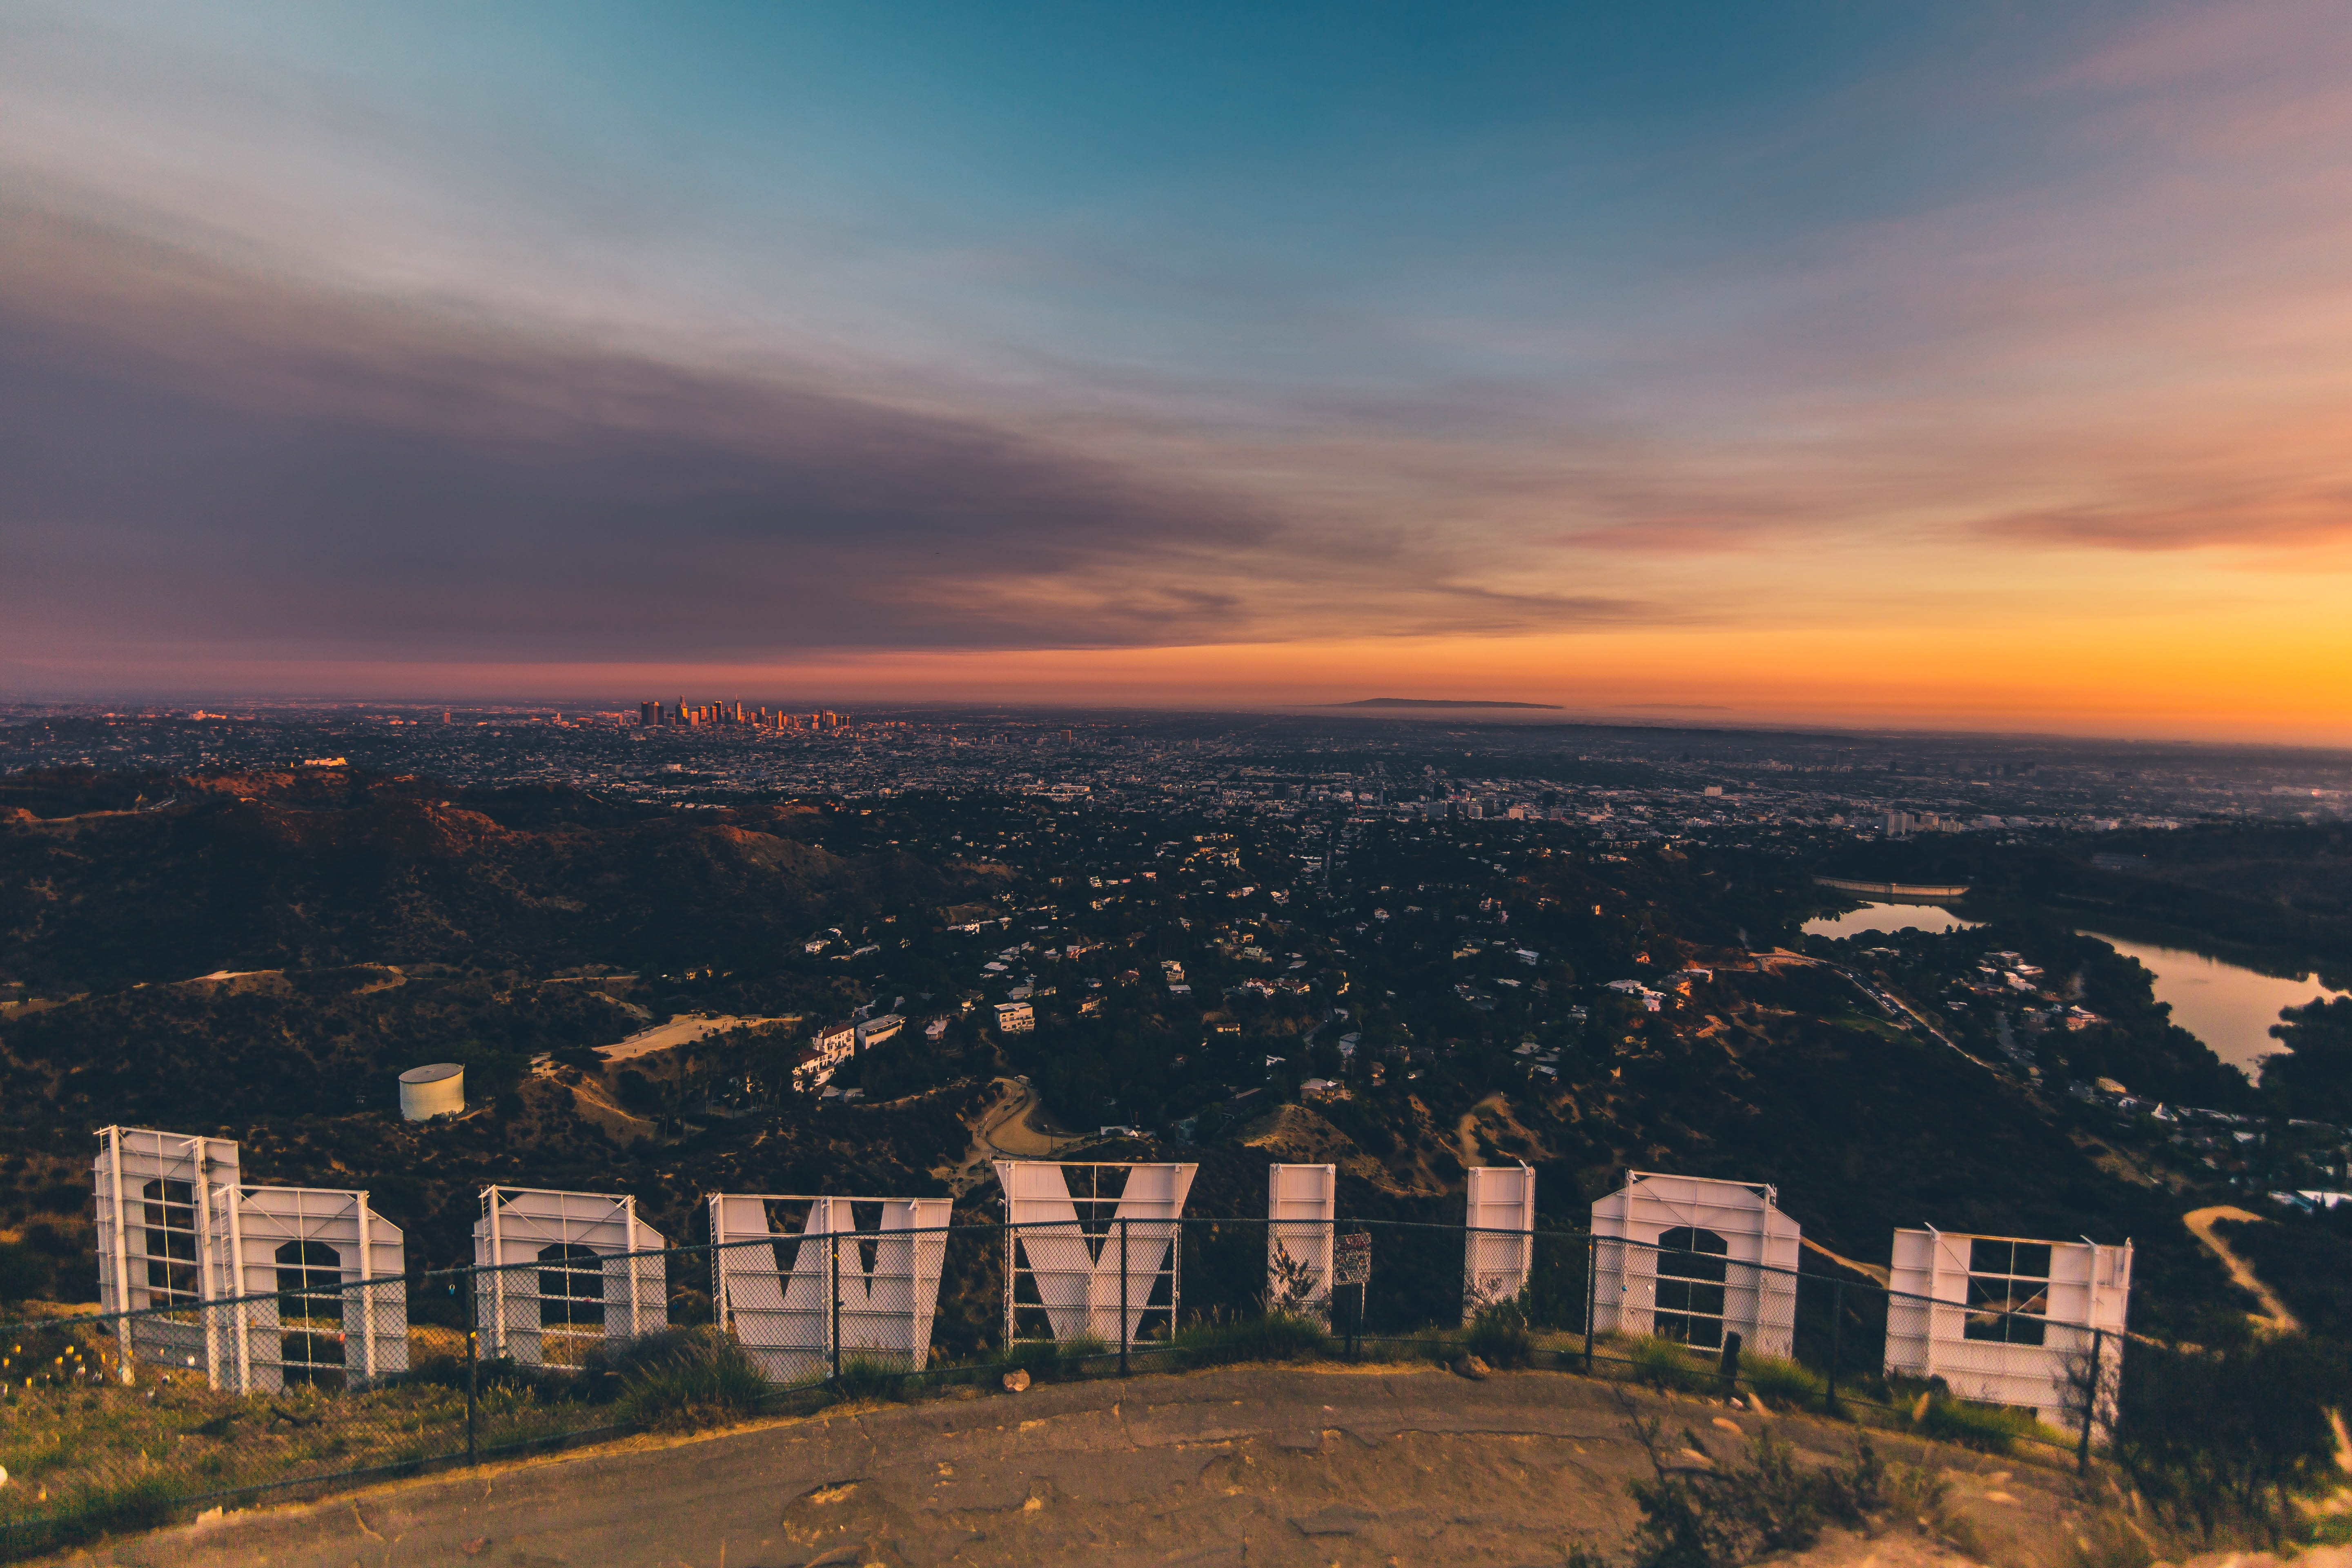 Photo taken from behind the Hollywood sign, with Los Angeles spread out below